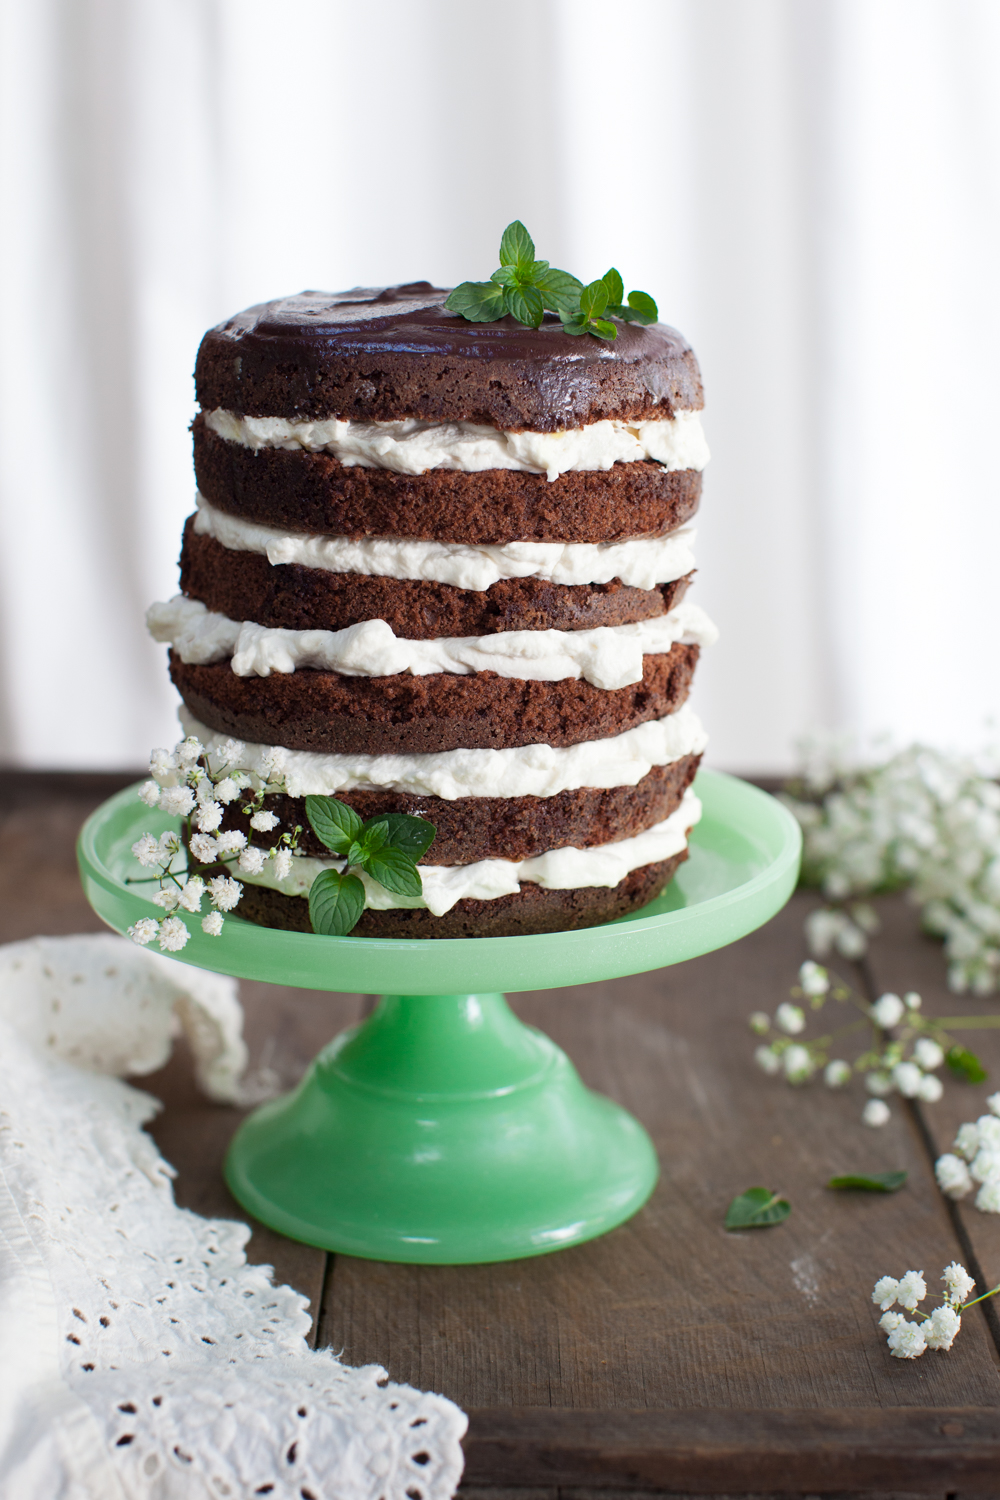 Mint Chocolate Cake layered up and ready to party.